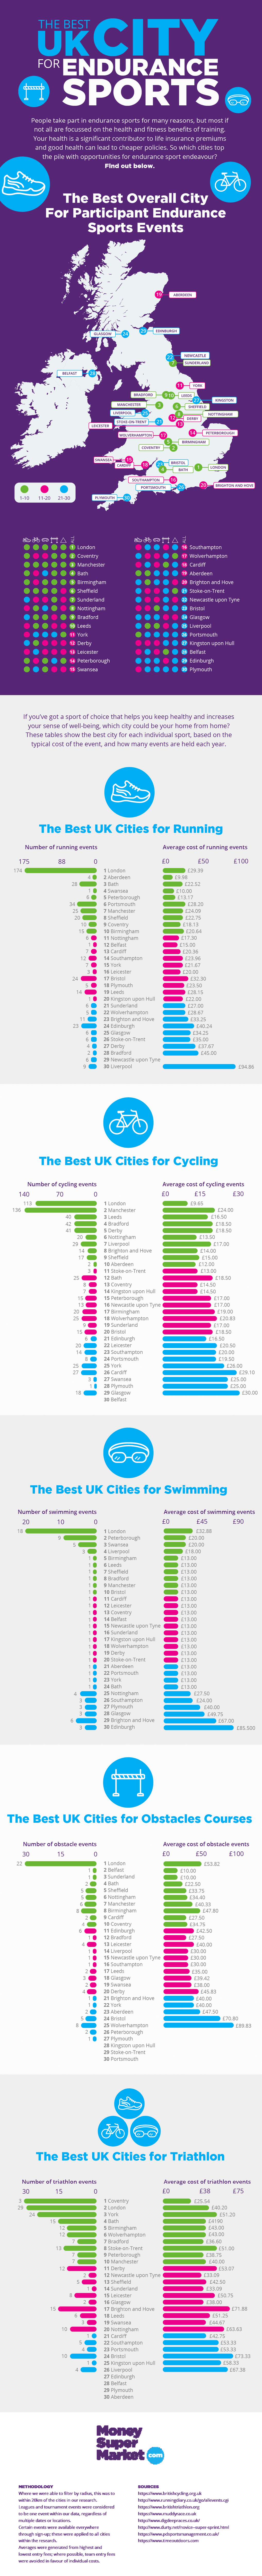 The Best UK City For Endurance Sports